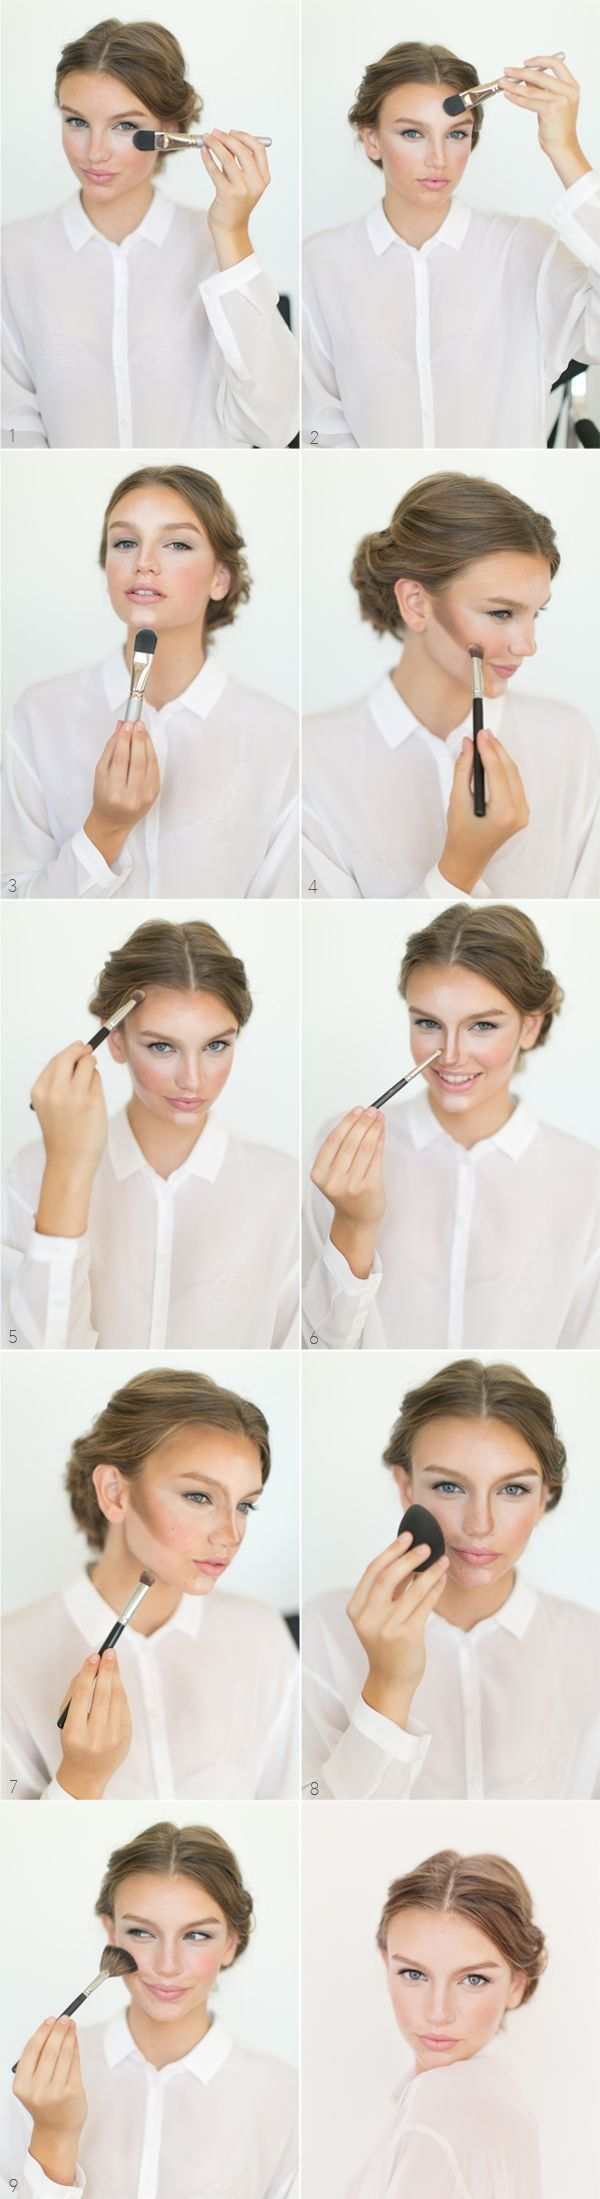 Make-up tutorial! Simple step by step to shading and contouring your face. Beautiful. #undonestar